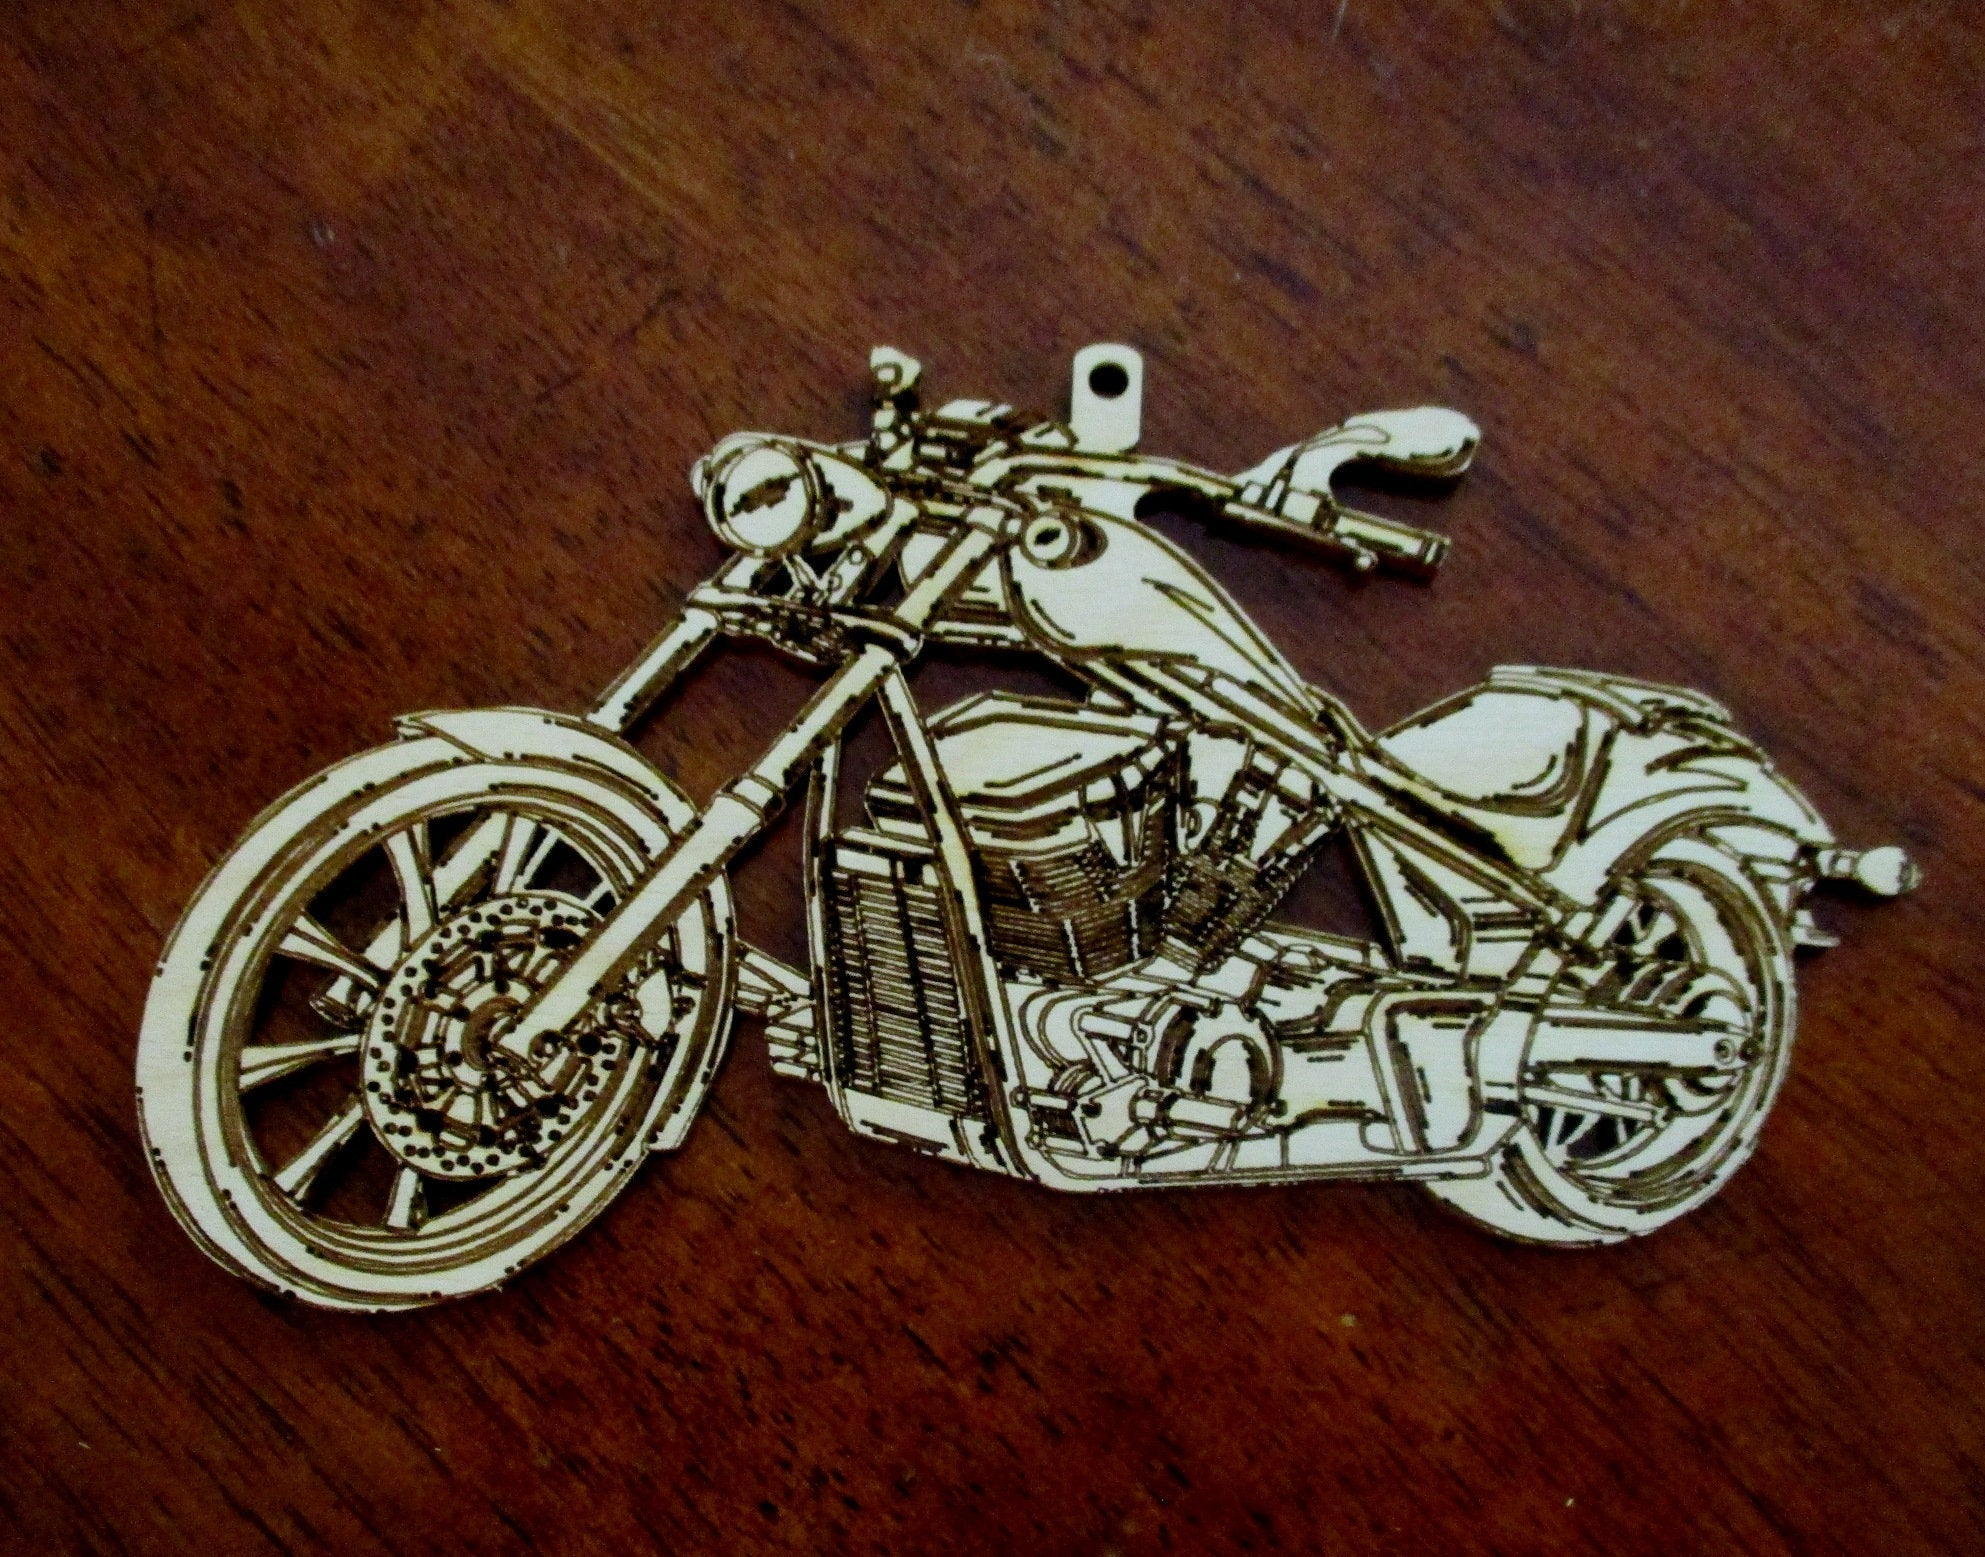 Custom Motorcycle Ornaments Christmas Tree Ornaments Laser Engraved De Carved By Heart